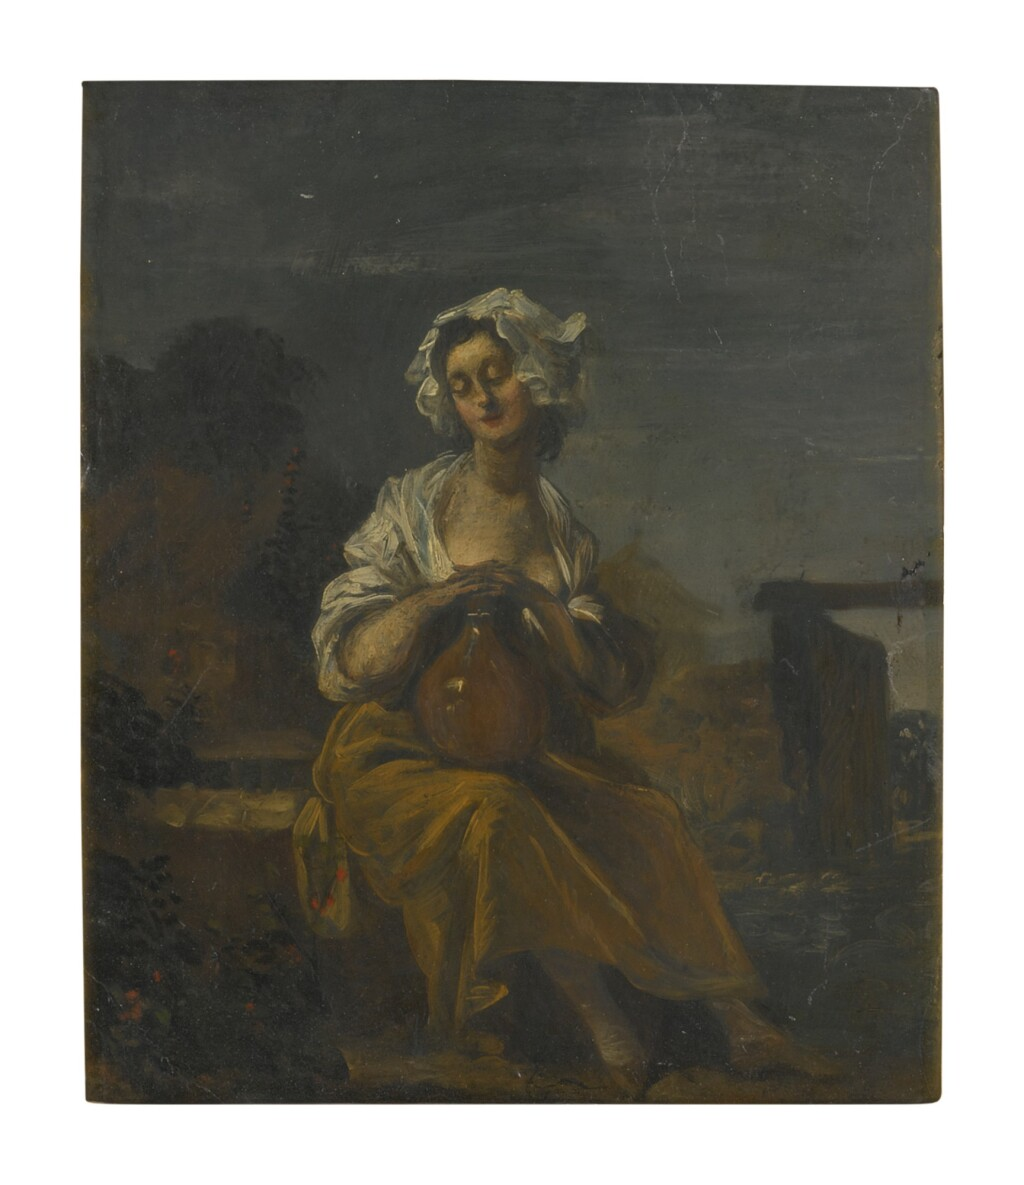 SPANISH SCHOOL, 18TH CENTURY   A YOUNG WASHERWOMAN IN A LANDSCAPE